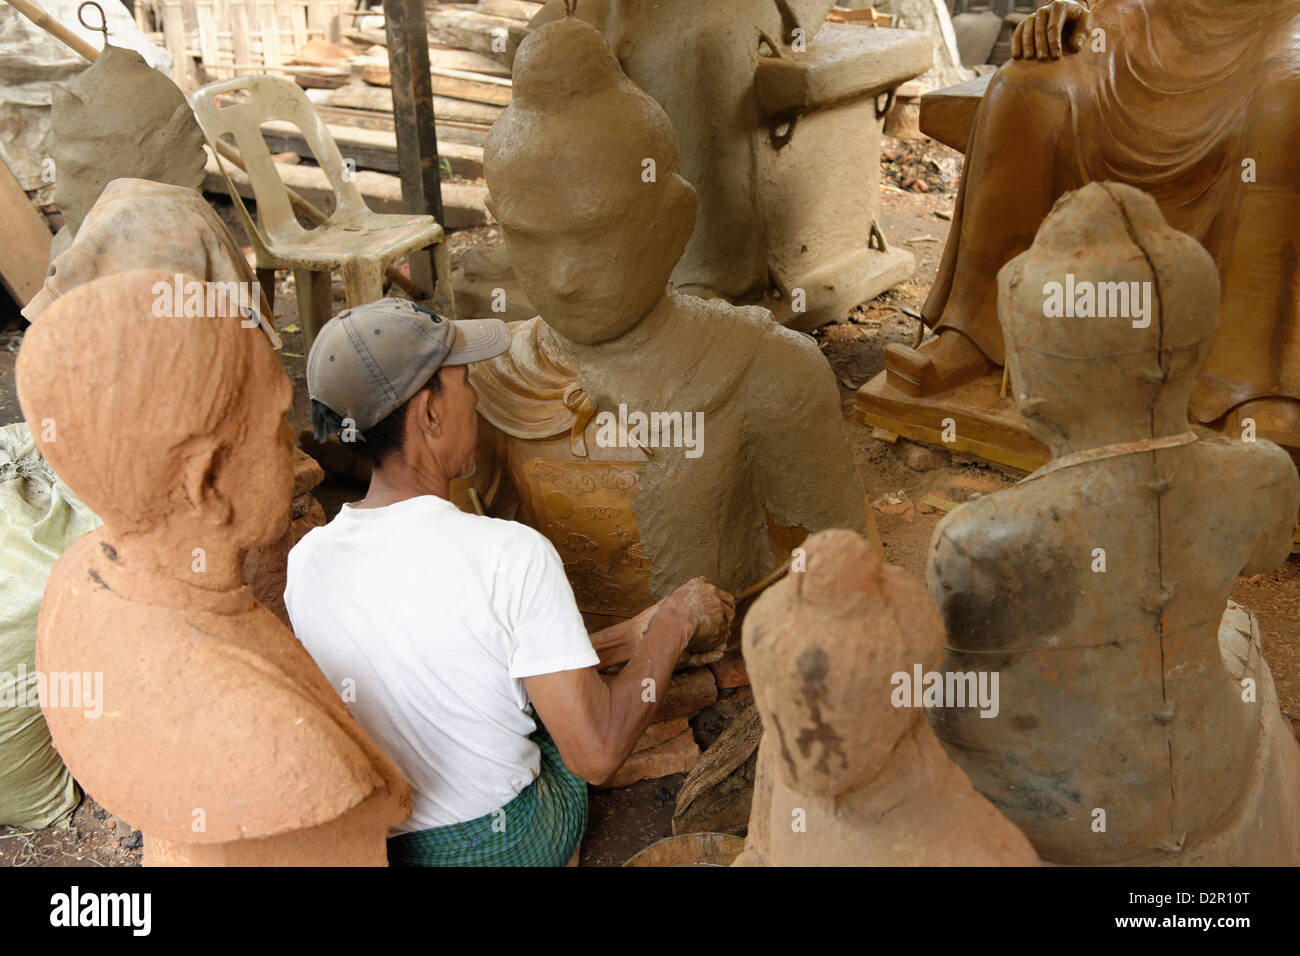 Lost-wax casting open air workshop, Amarapura, Mandalay Division, Republic of the Union of Myanmar (Burma), Asia - Stock Image